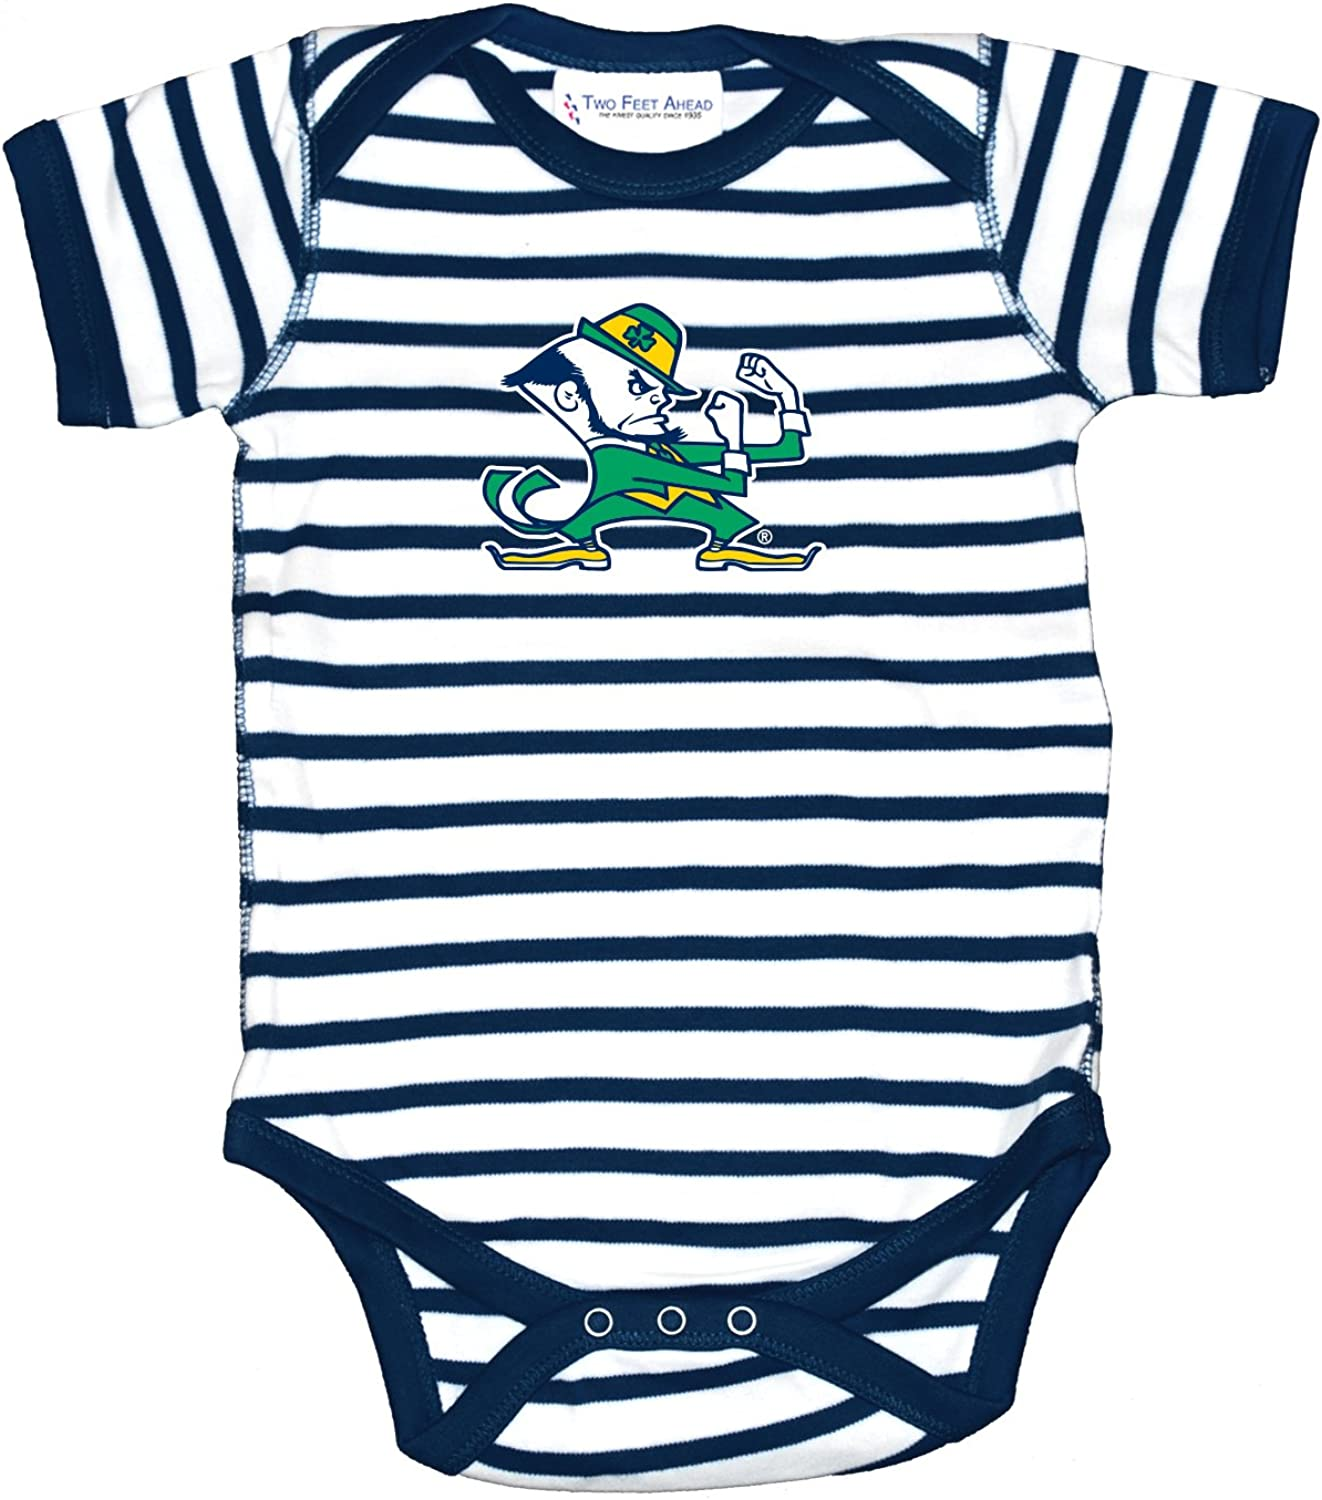 Notre Dame Fighting Irish Two Tone Football NCAA College Newborn Infant Baby Creeper